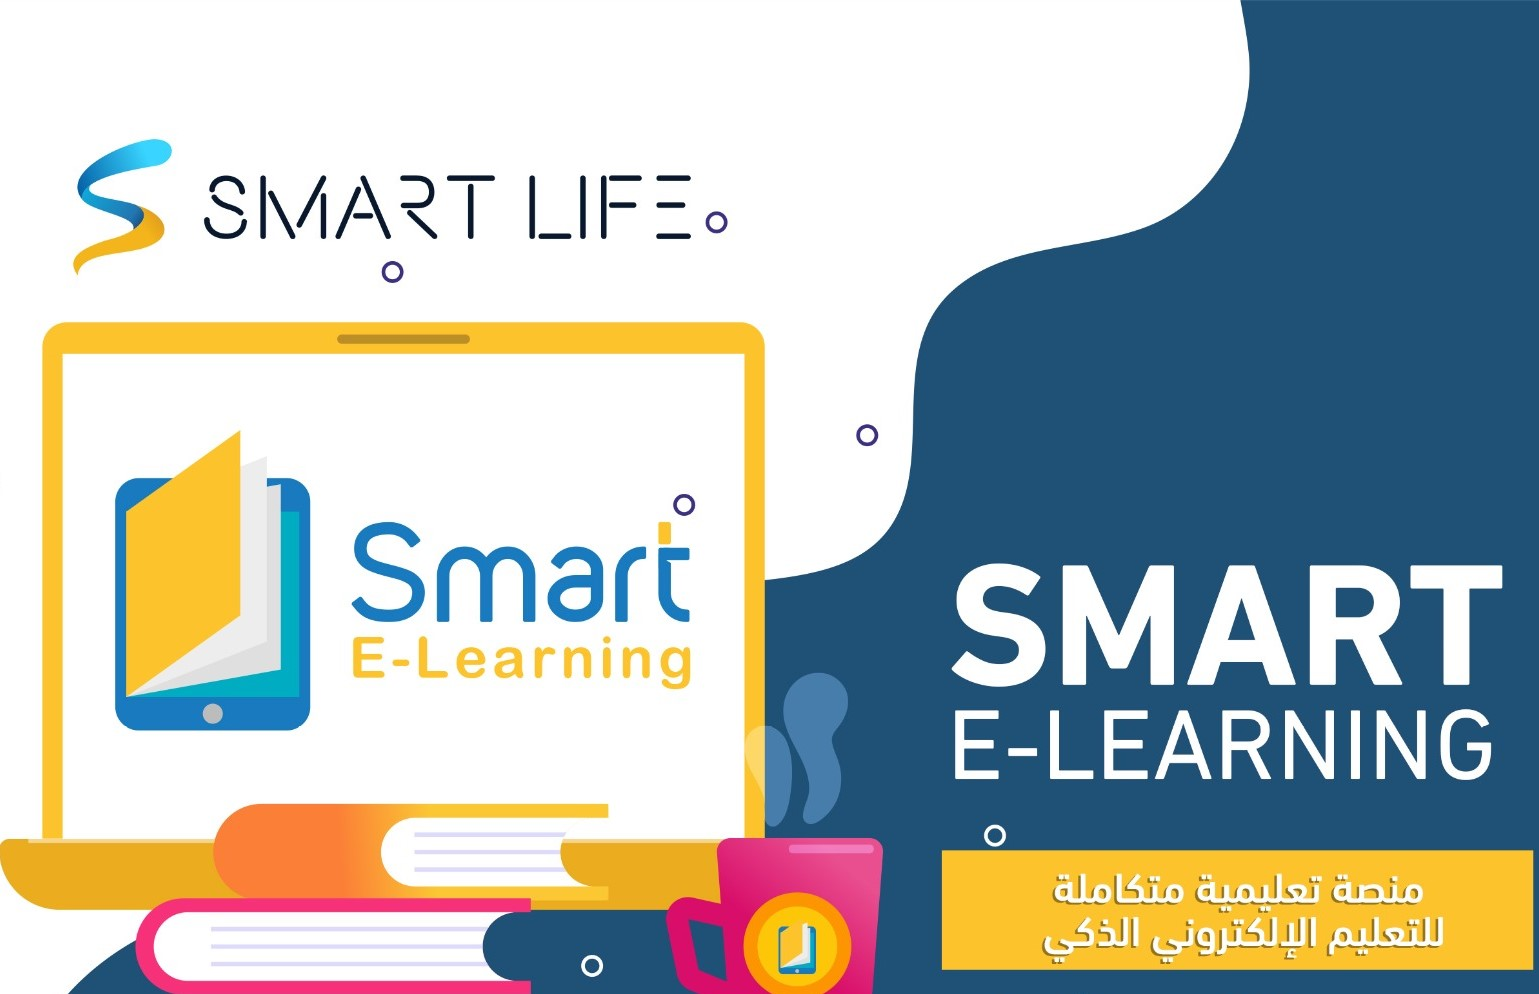 The Smart E-Learning System is an interactive system that relies on an integrated digital electronic environment that displays online courses, and provides guidance and guidance, organizing tests as well as managing and evaluating resources and processes.